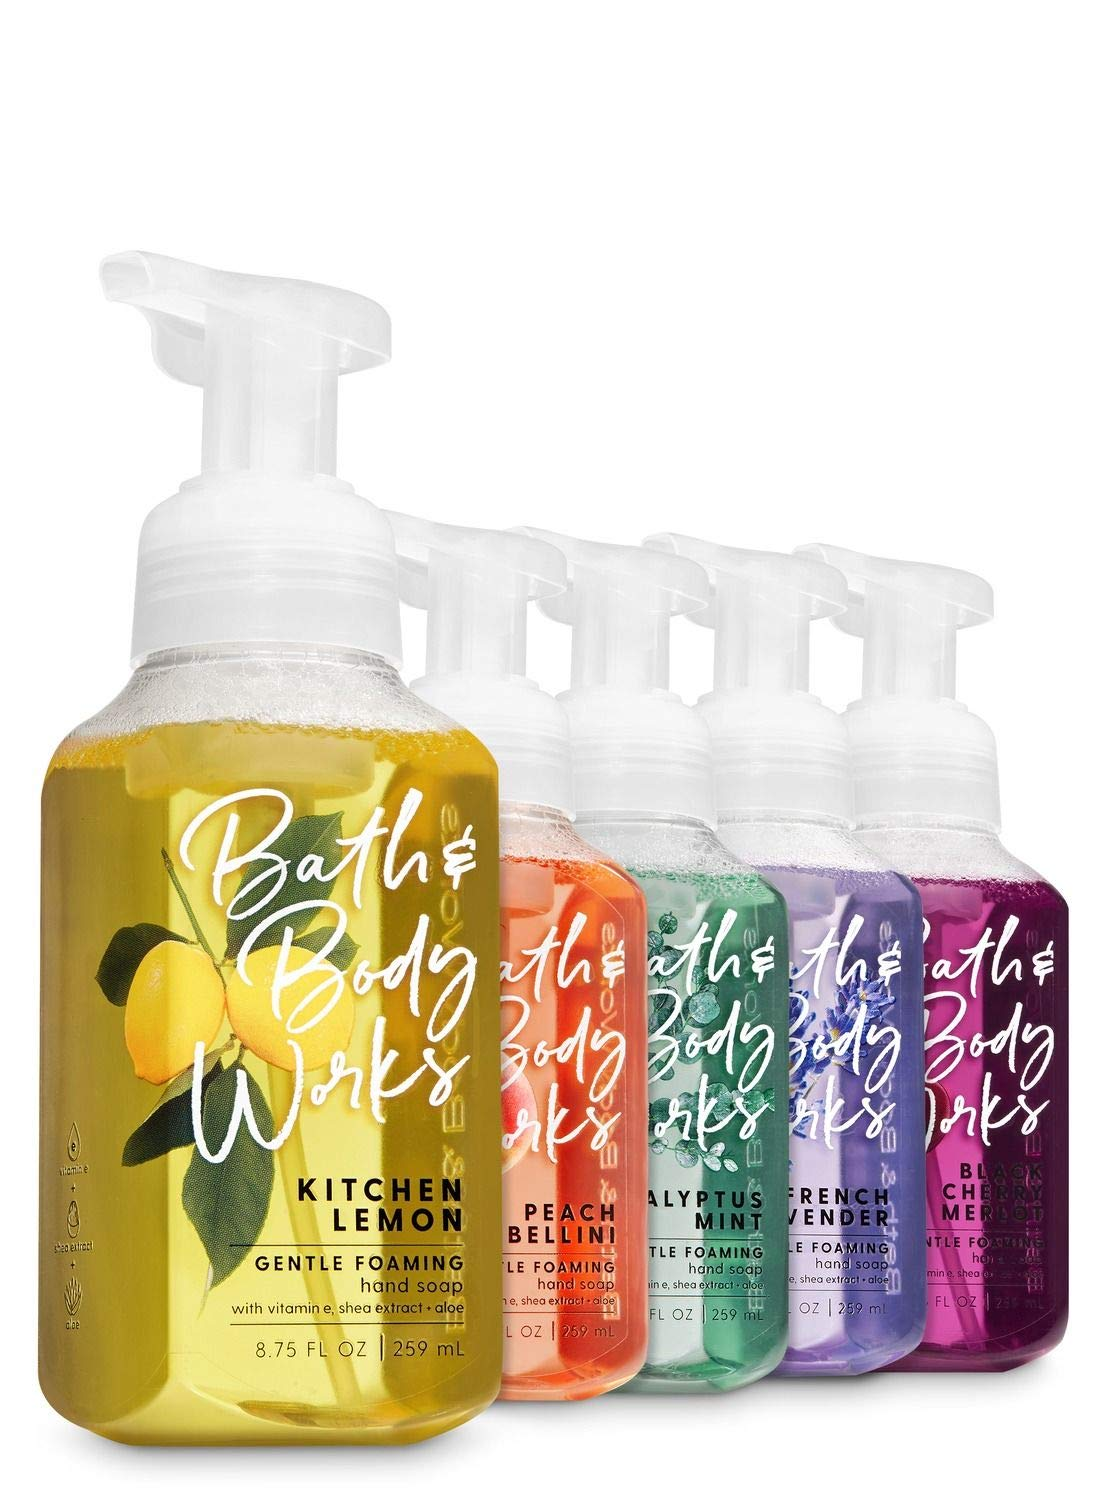 Bath and Body Works Classic Kitchen Favorites - Set of 5 Foaming Hand Soaps - Black Cherry Merlot, Kitchen Lemon, Eucalyptus Mint, Peach Bellini, and French Lavender